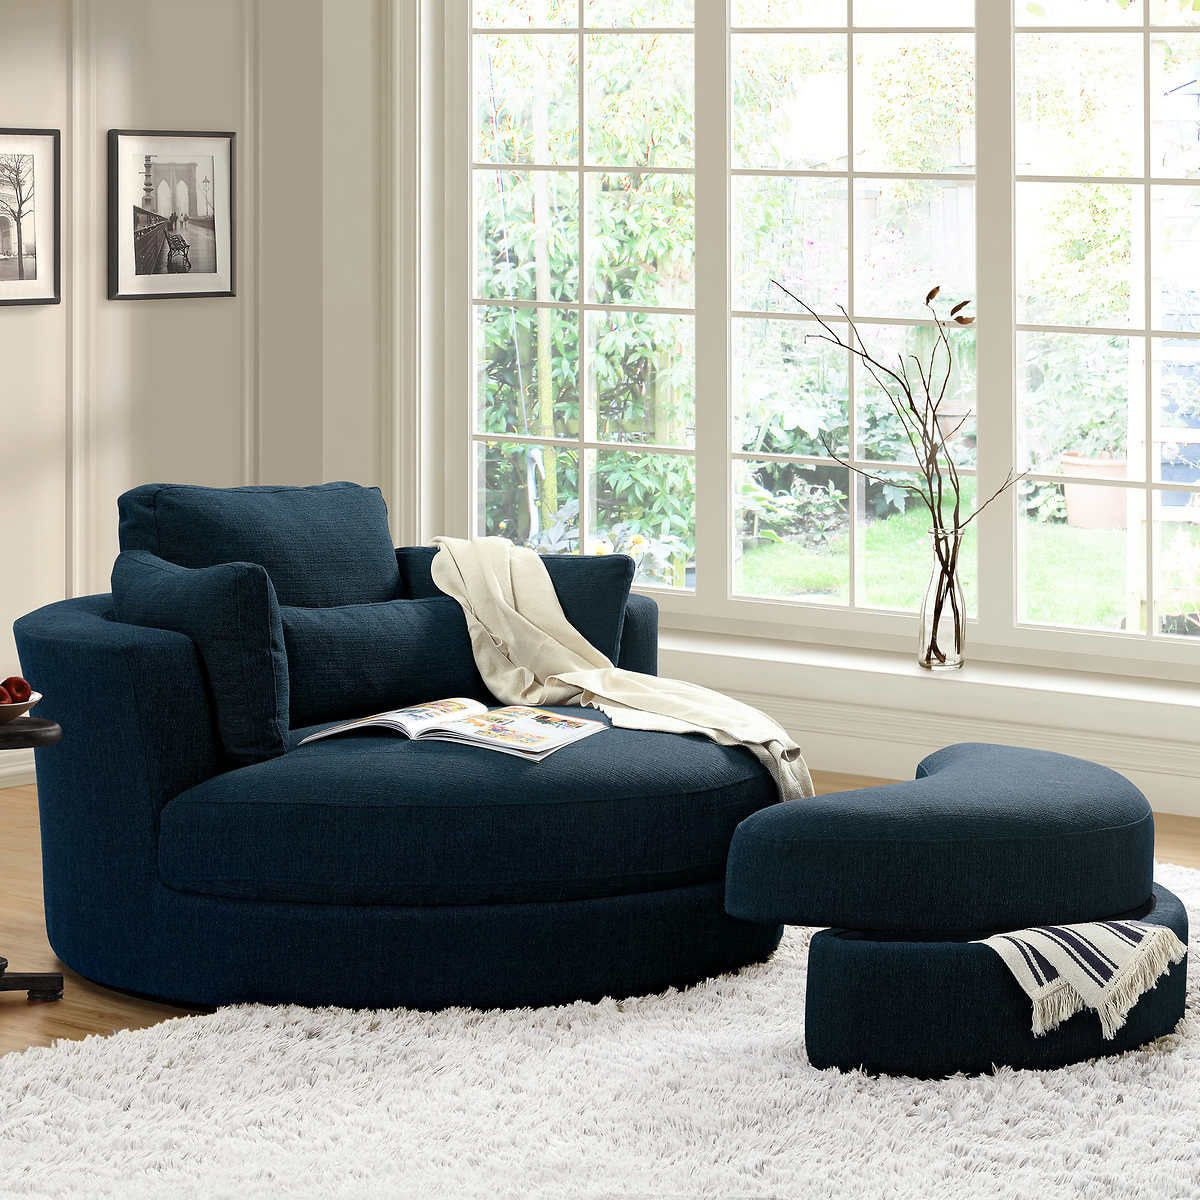 Remarkable Turner Blue Cuddler Swivel Chair With Storage Ottoman In Dailytribune Chair Design For Home Dailytribuneorg